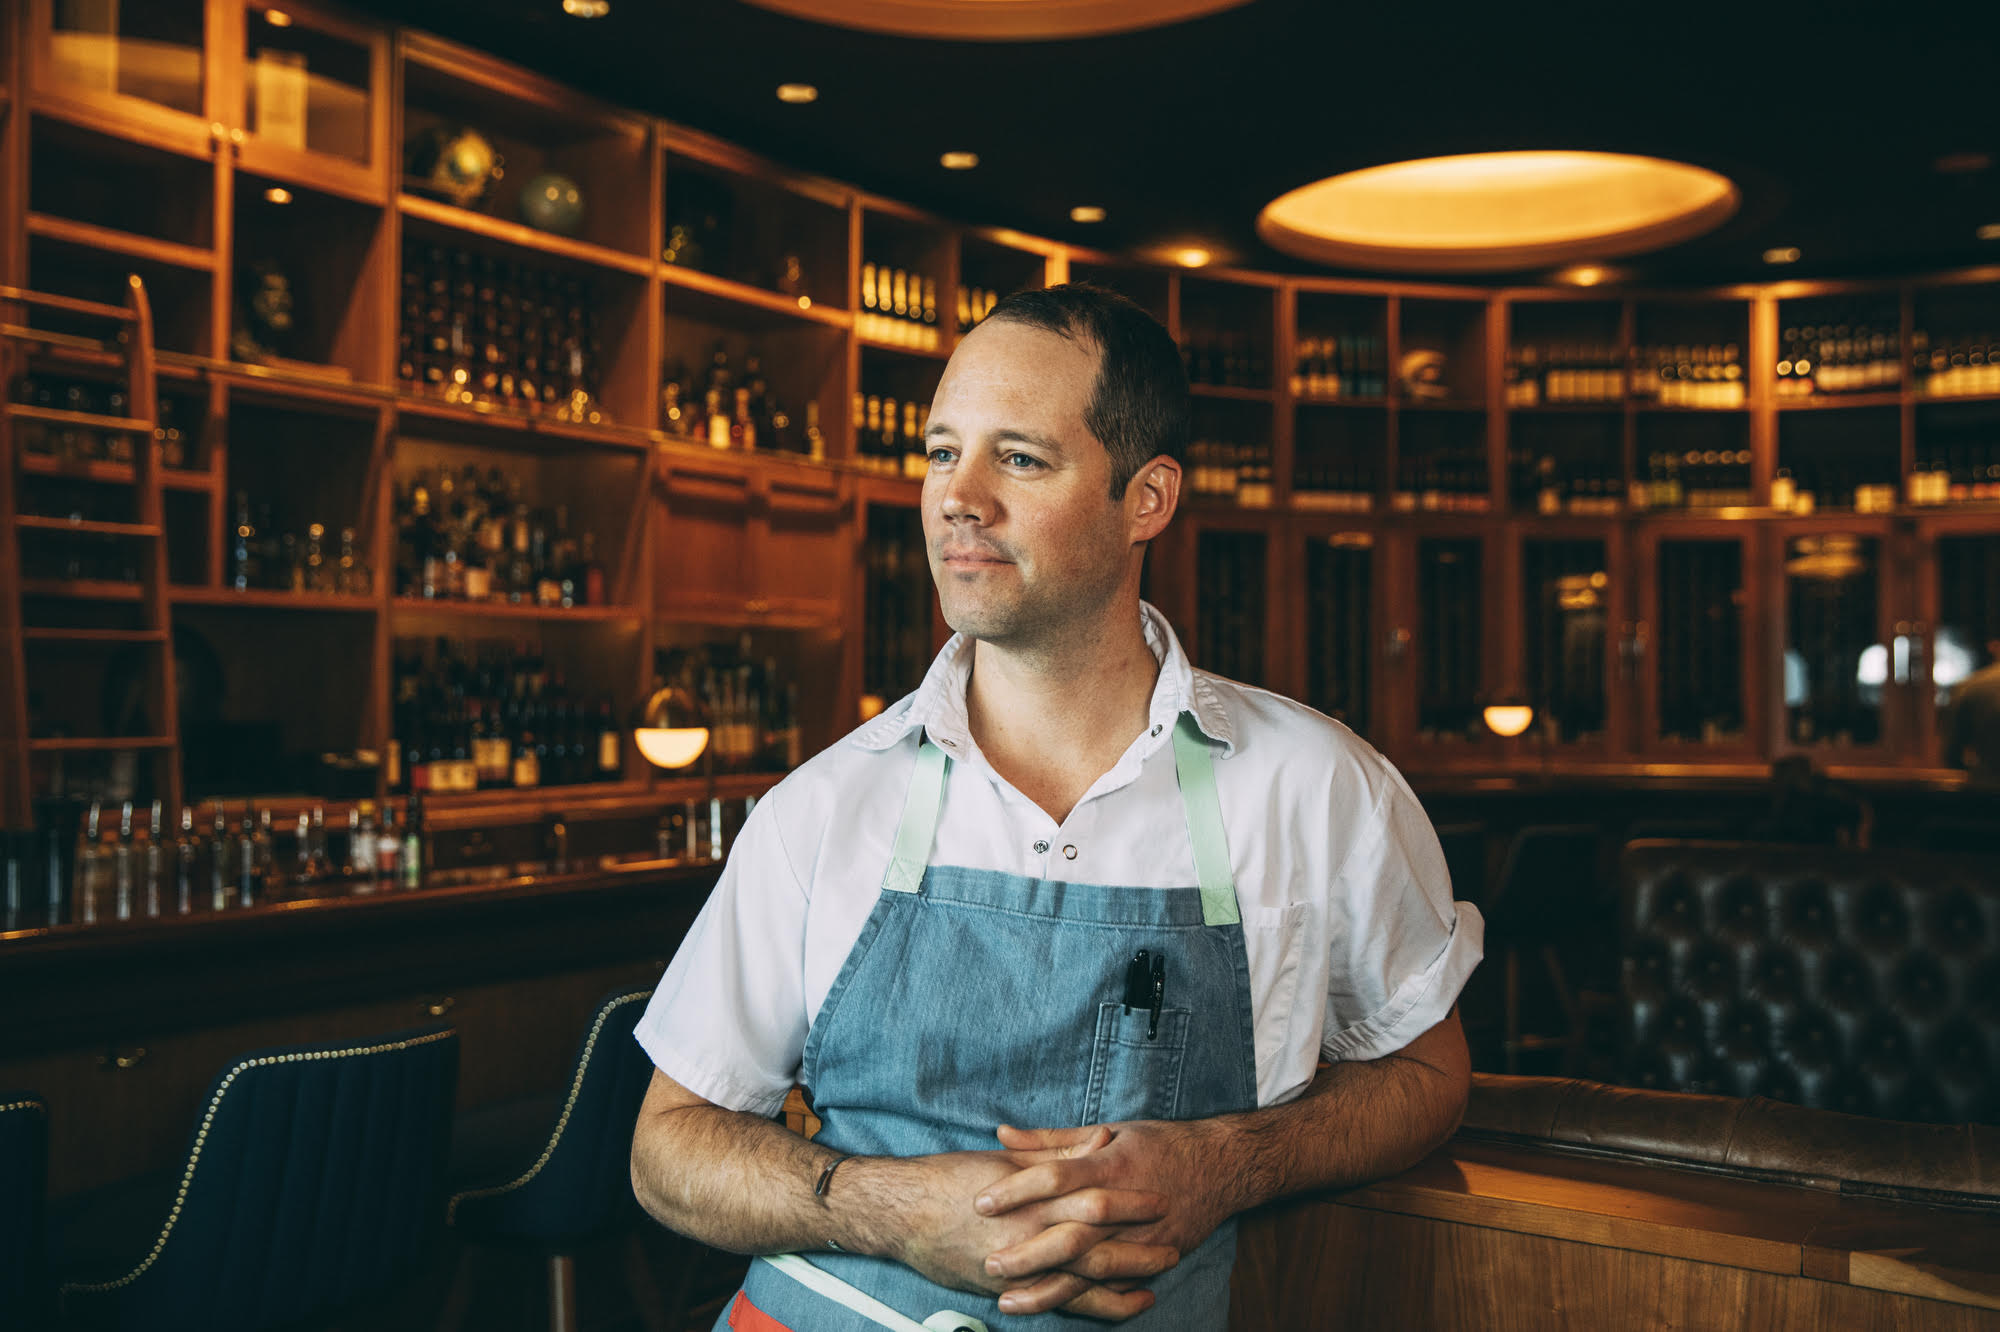 A white man in a white shirt and blue apron.